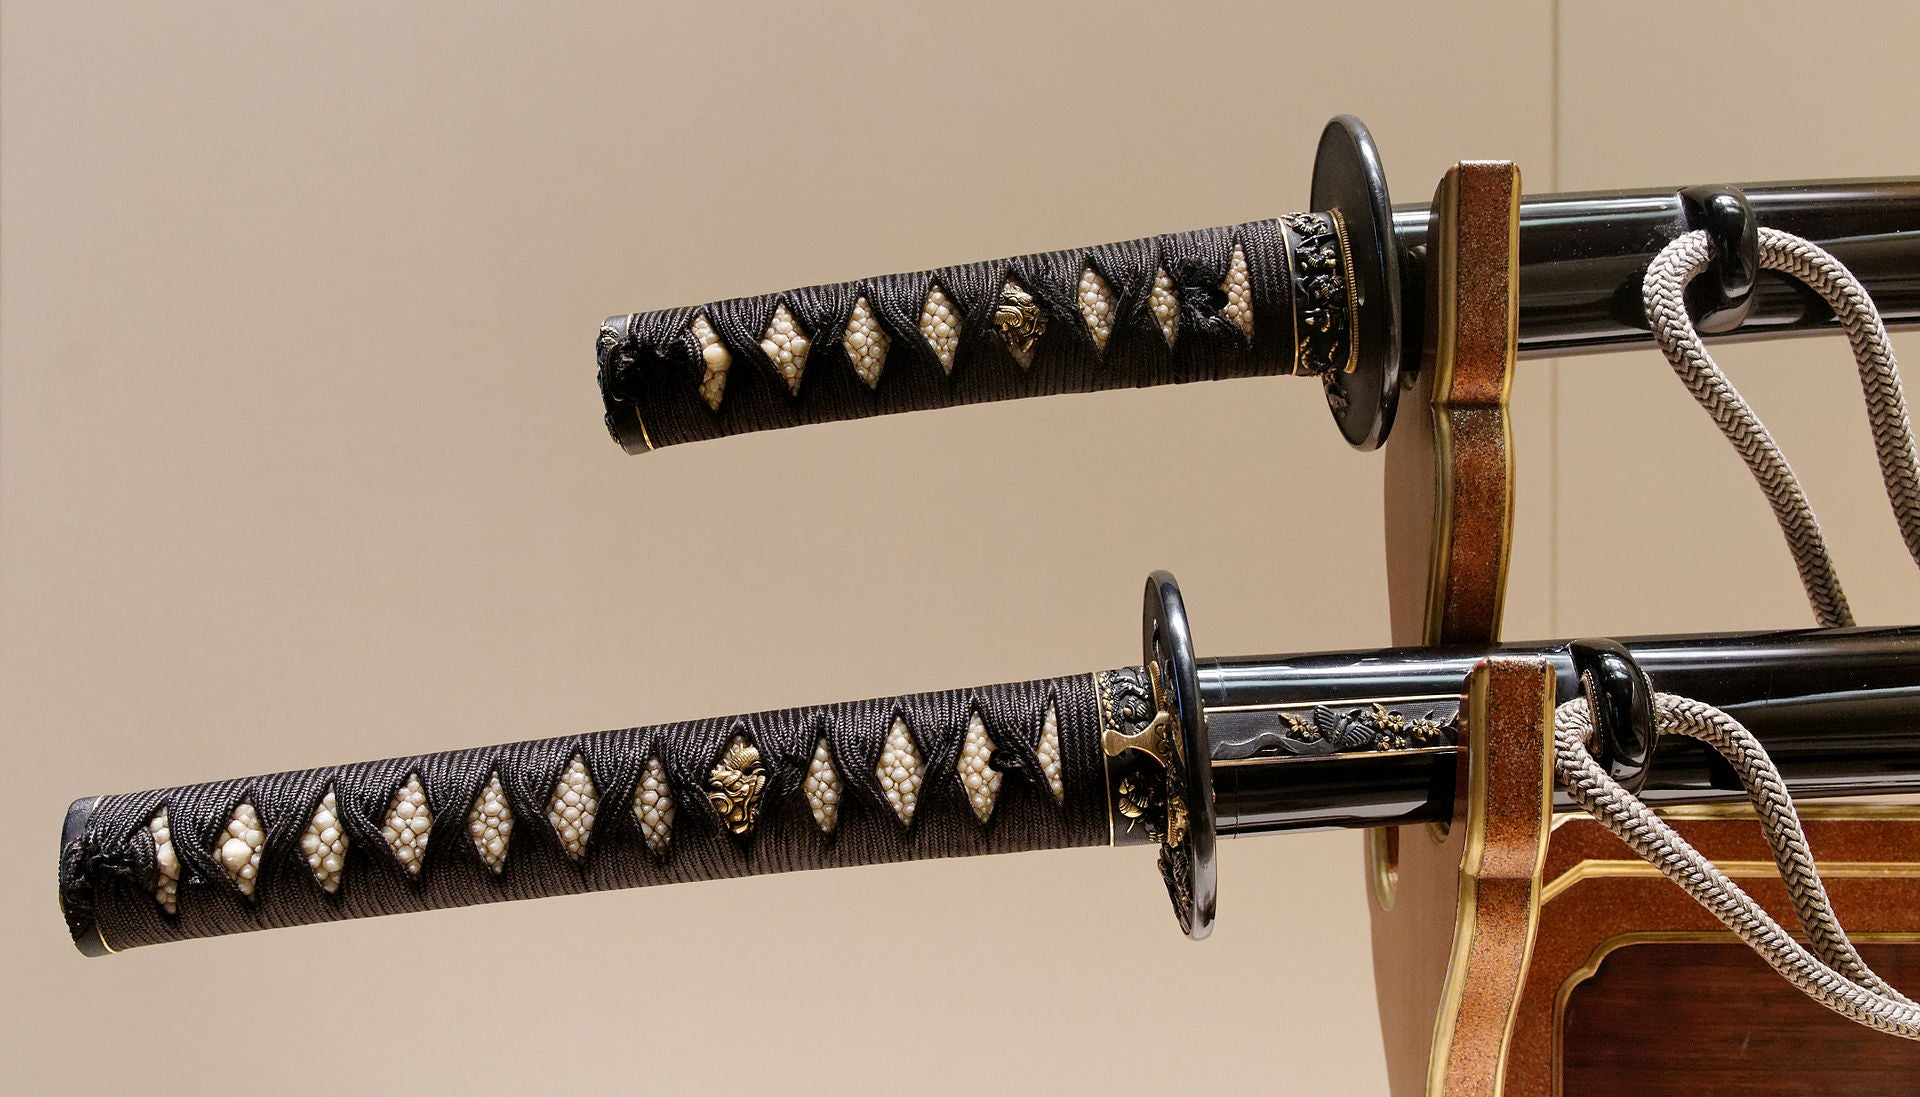 Traditional vs Modern Japanese Katana: What's the Difference?